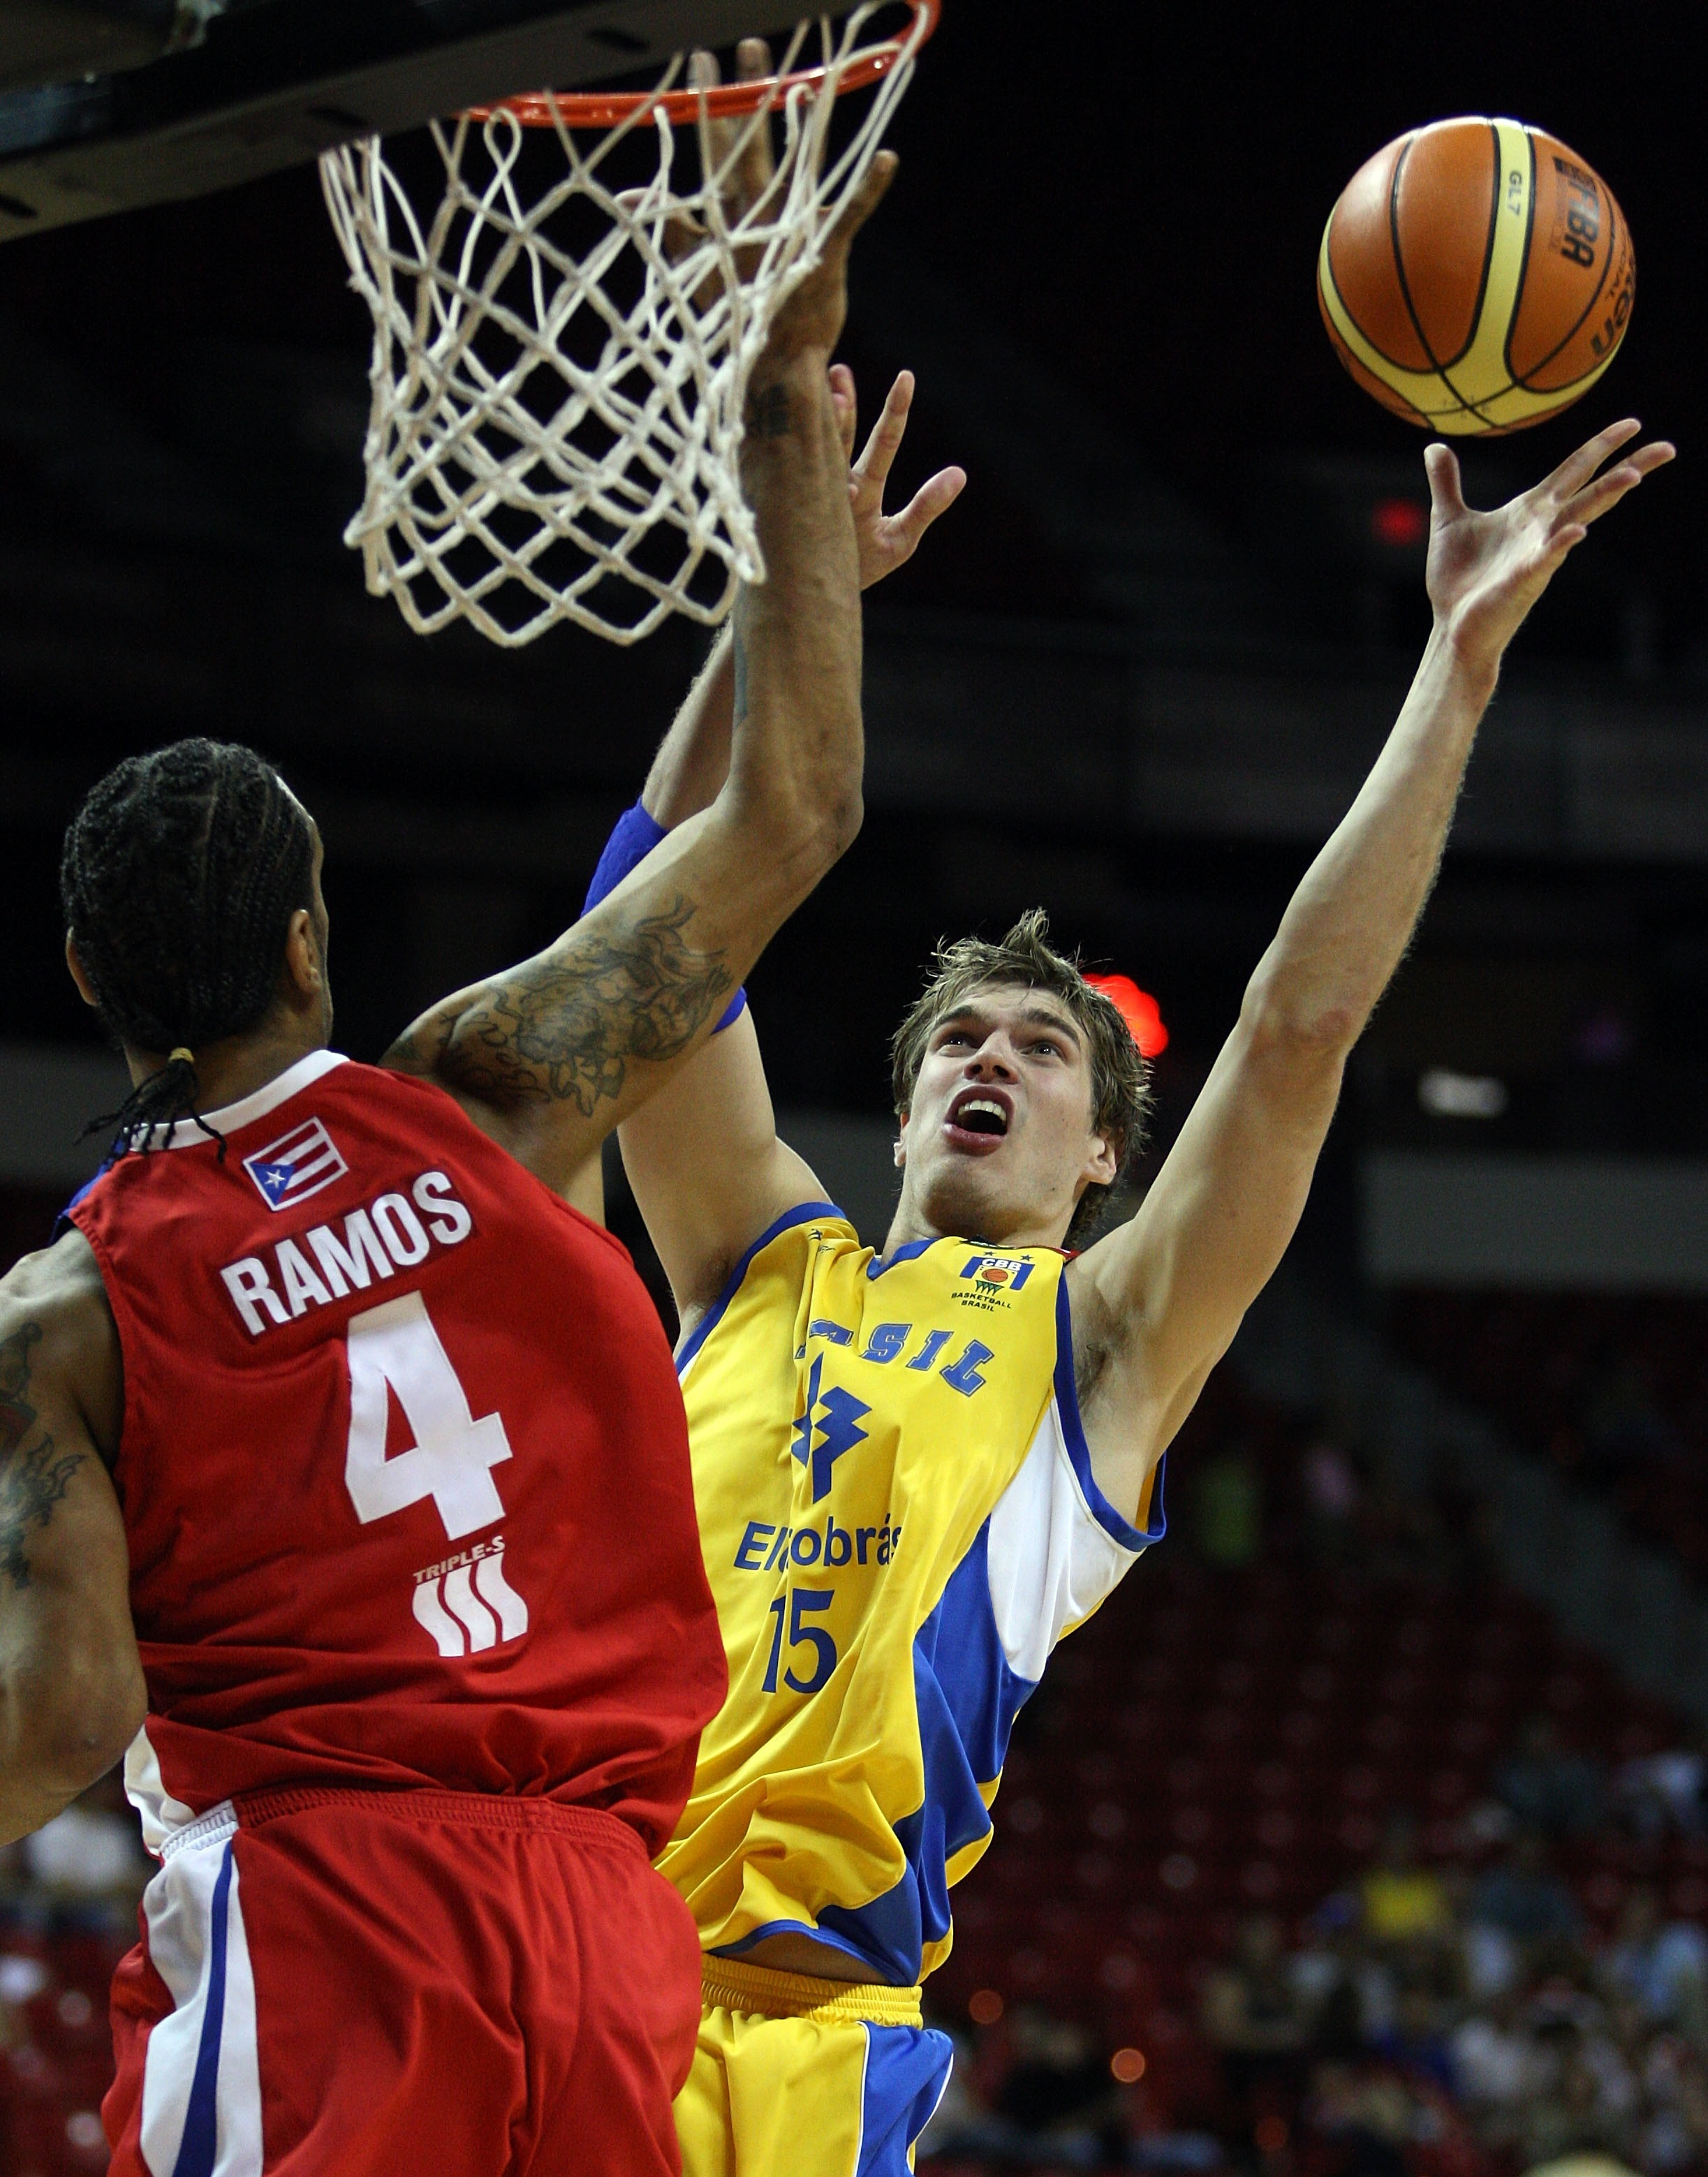 LAS VEGAS - SEPTEMBER 2:  Tiago Splitter #15 of Brazil shoots over Peter J. Ramos #4 of Puerto Rico during the FIBA Americas Championship 2007 Bronze Medal game at Thomas & Mack Center September 2, 2007 in Las Vegas, Nevada.  (Photo by Jamie Squire/Getty